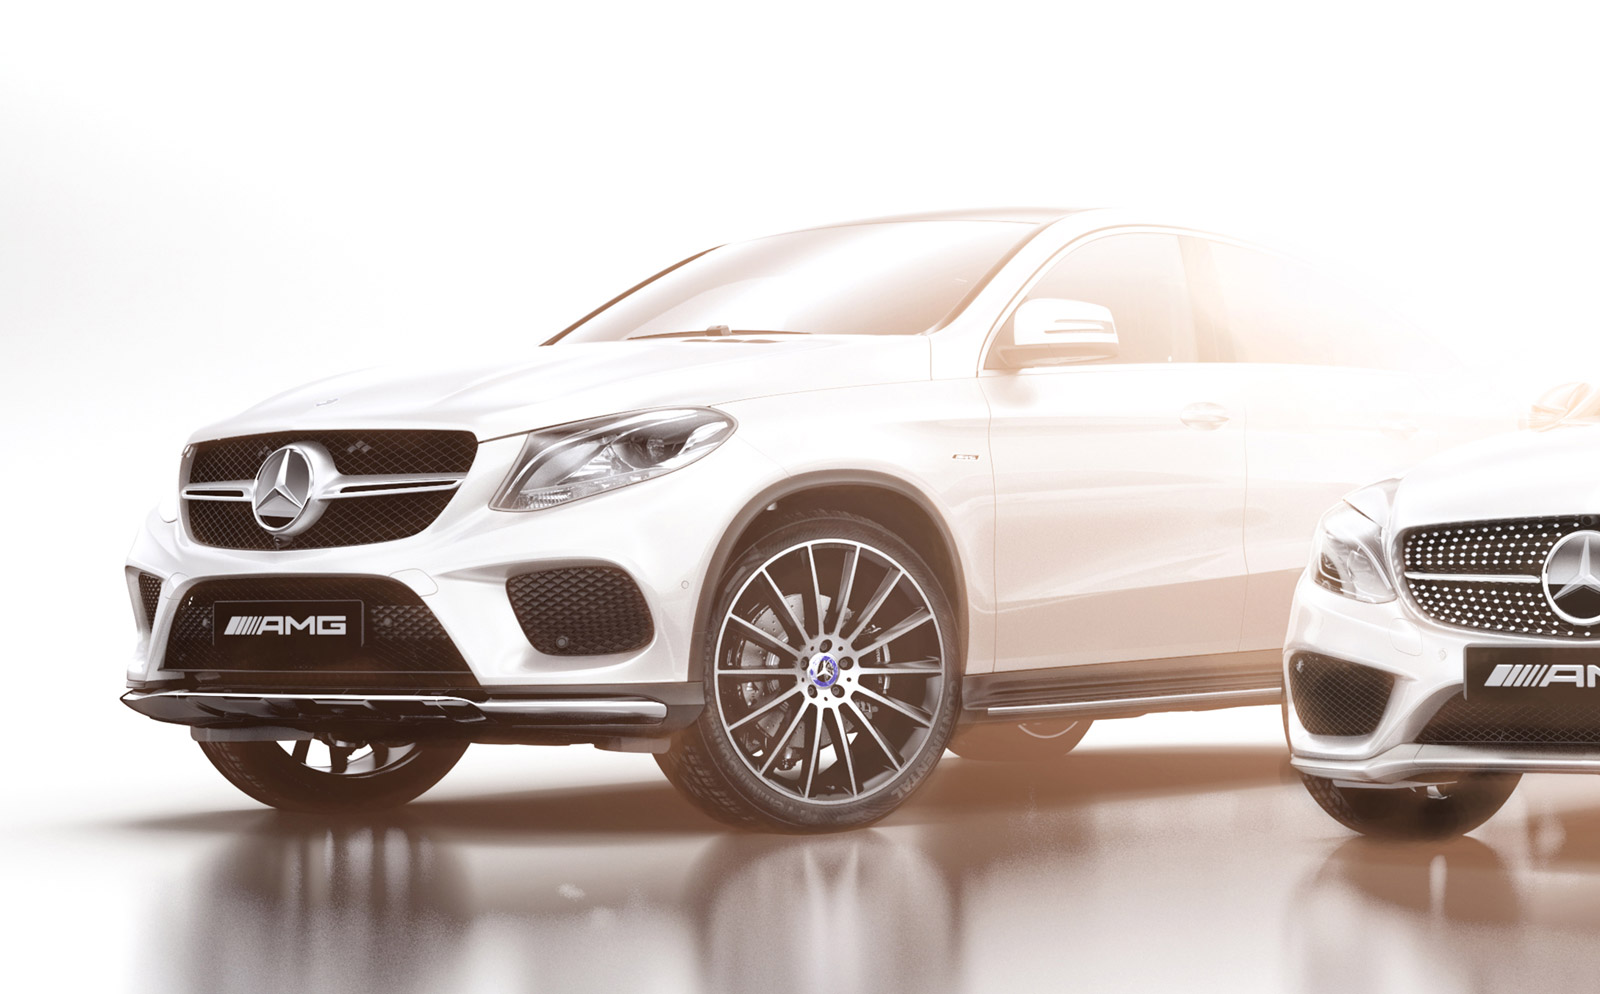 Mercedes Amg Teases New Sport Versions Of The C Cl And Upcoming Gle Coupe